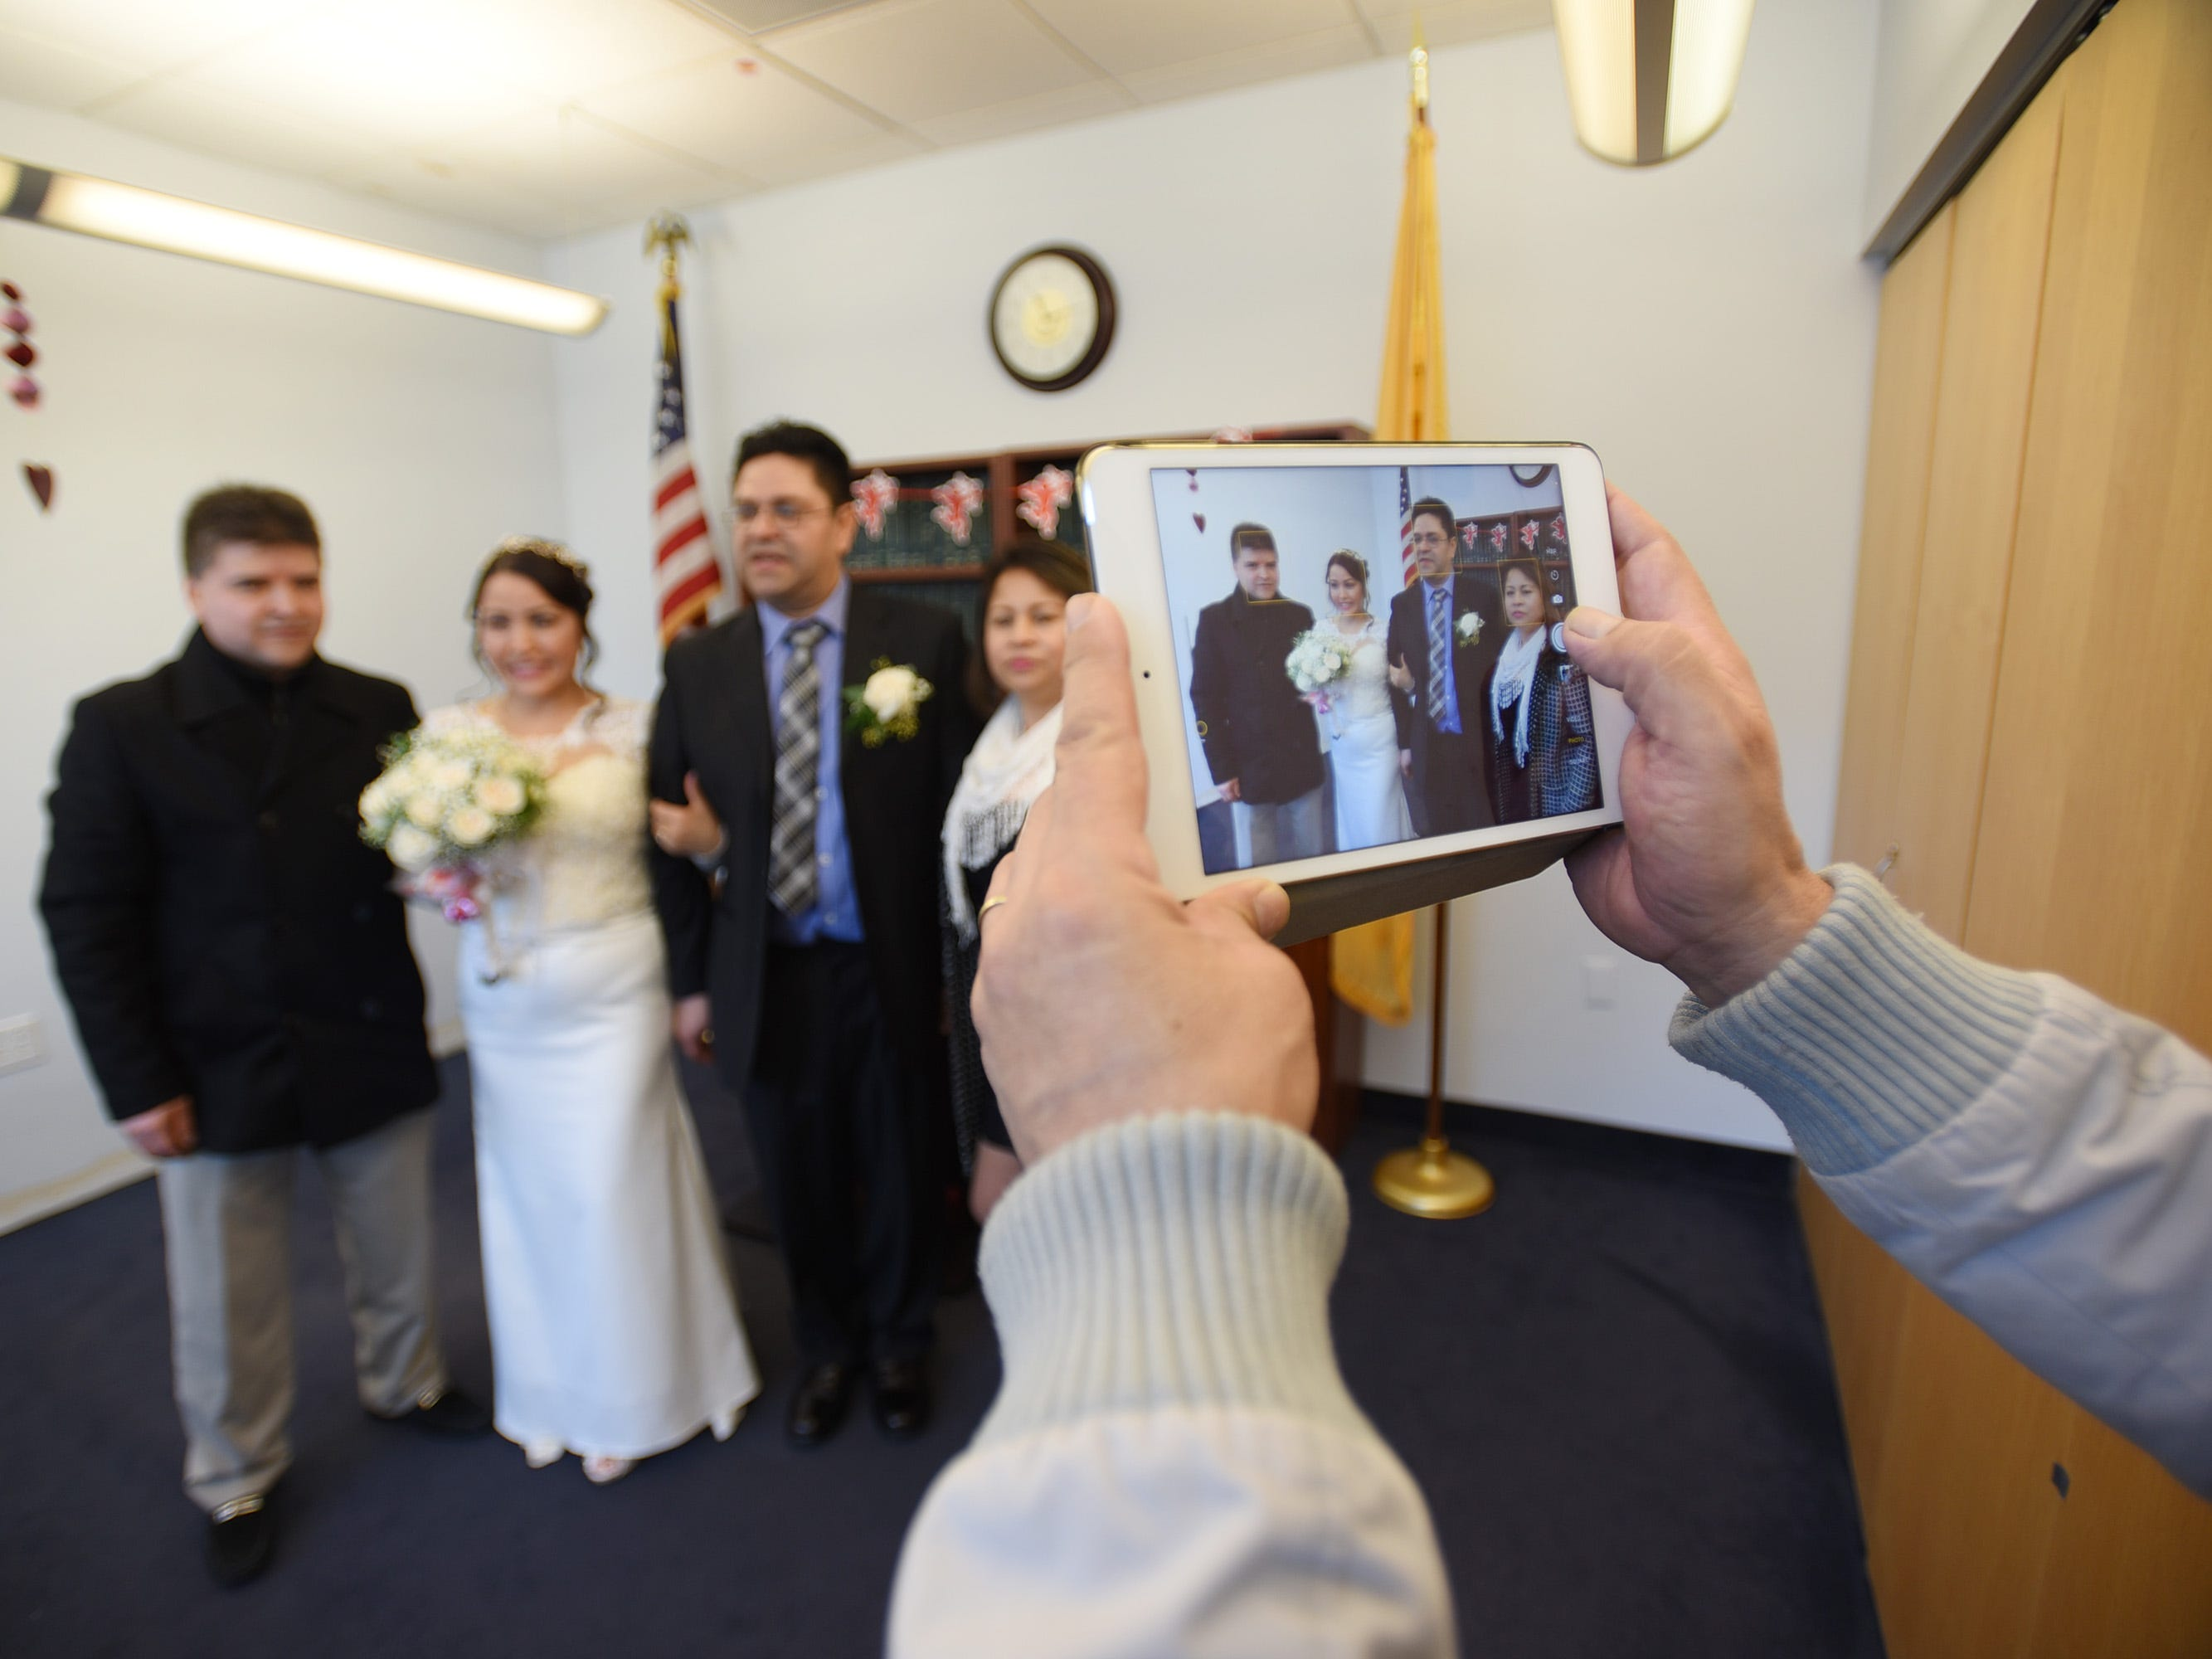 After being announced as a husband and a wide, Gloria Gallego and Alexander Gutierrez of Englewood, have photos taken together with members of their family following their wedding ceremony, located at Bergen County Plaza in Hackensack on 02/14/19.